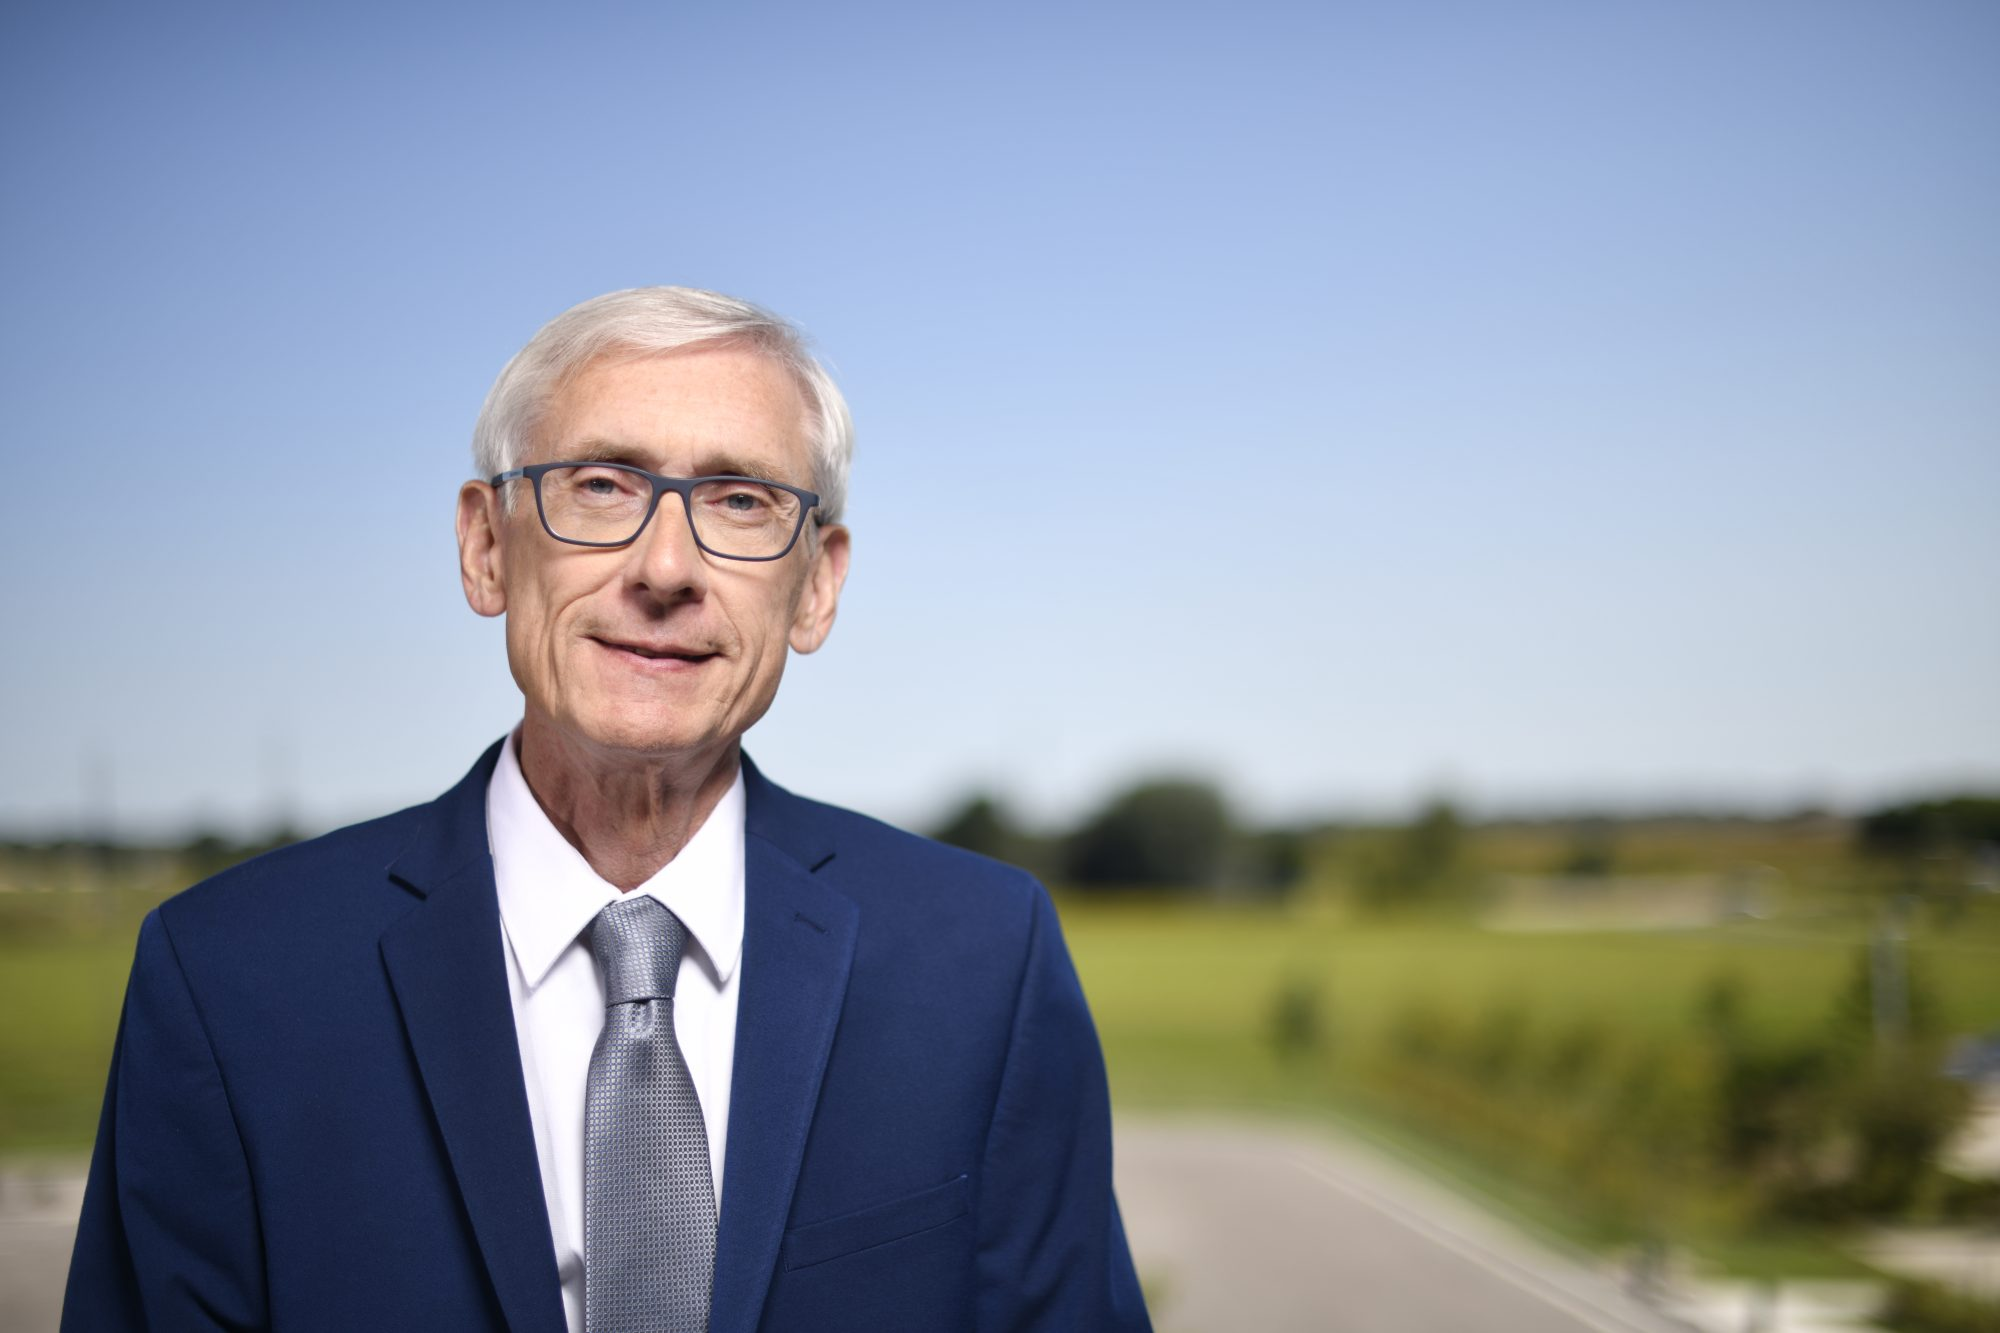 Gov. Evers Announces More Than $46 Million in Support to Small Businesses